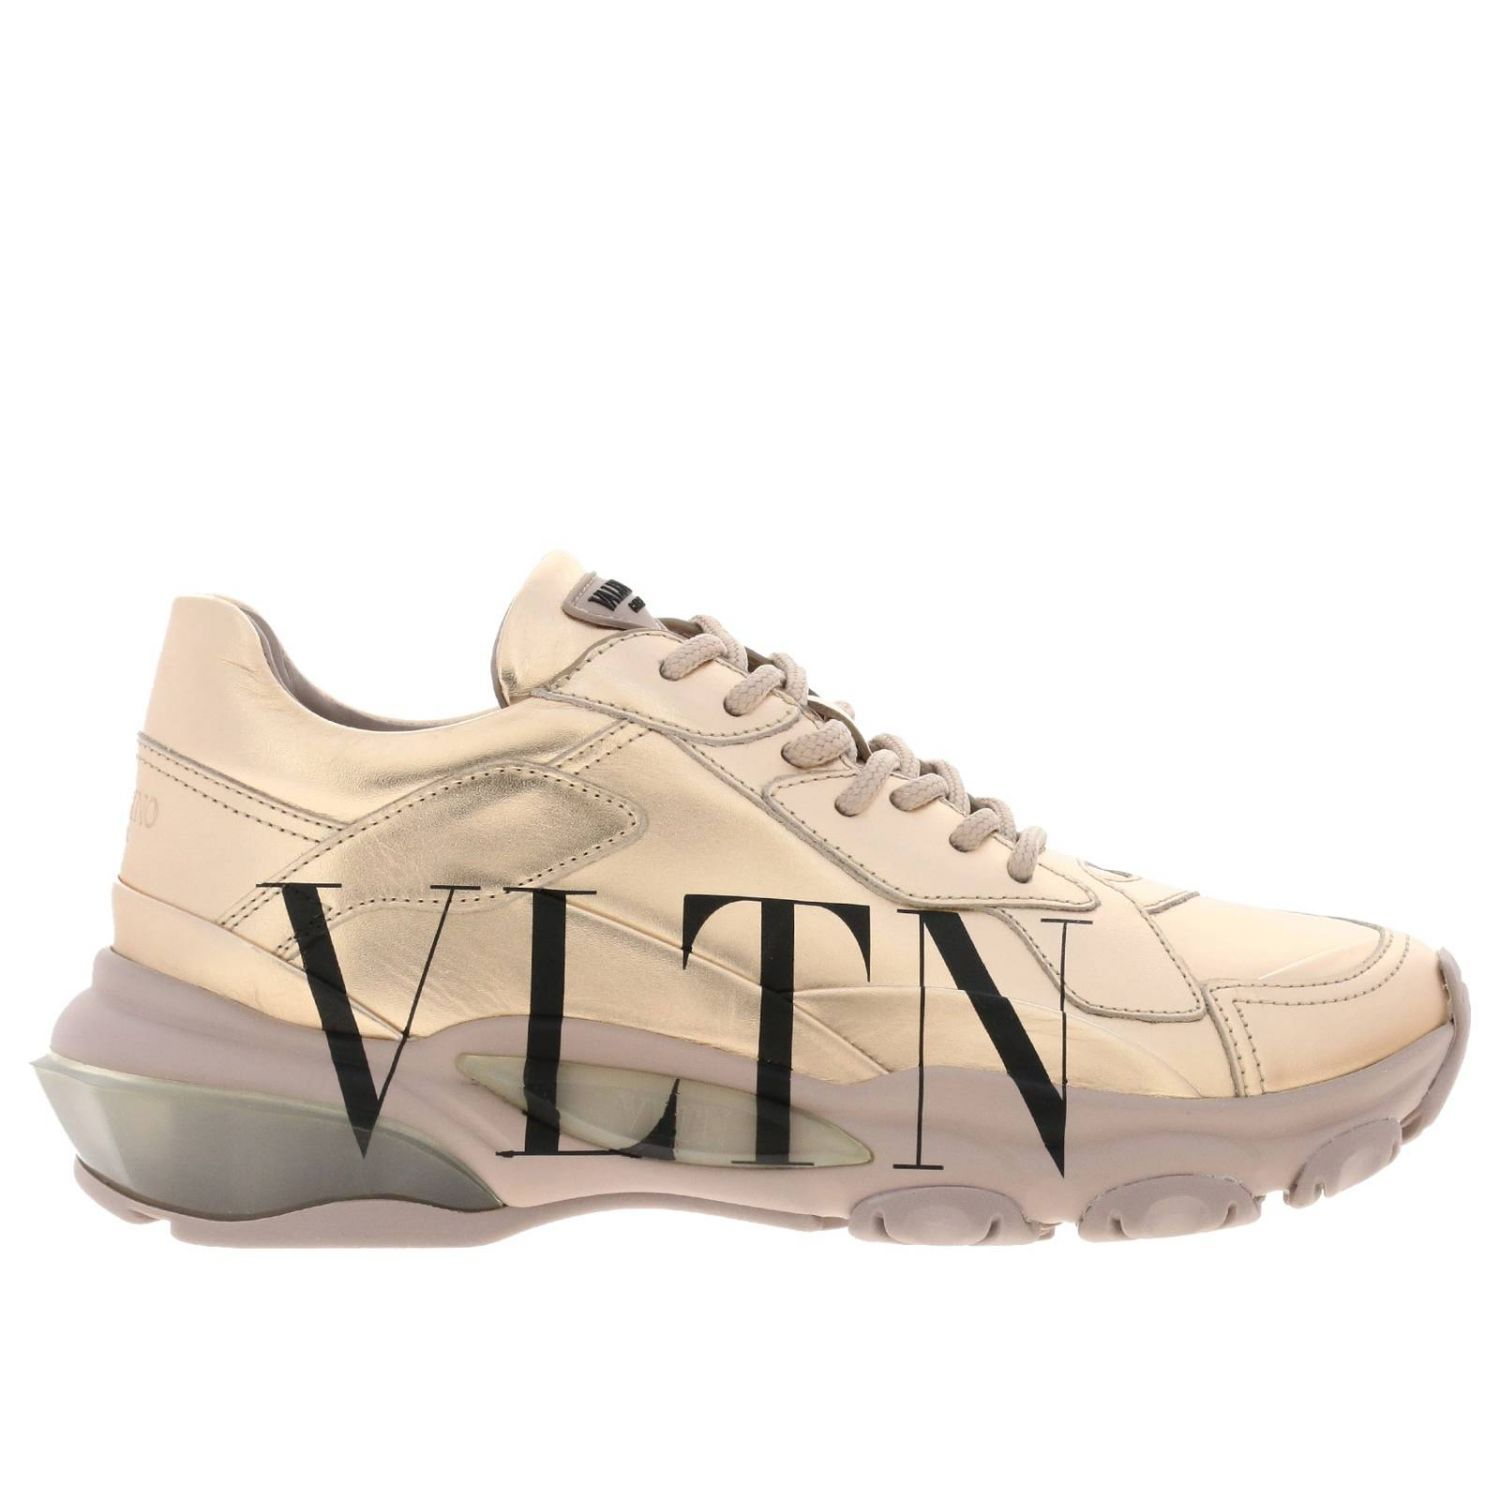 Valentino Garavani laminated genuine leather shoes with VLTN print blush pink 1